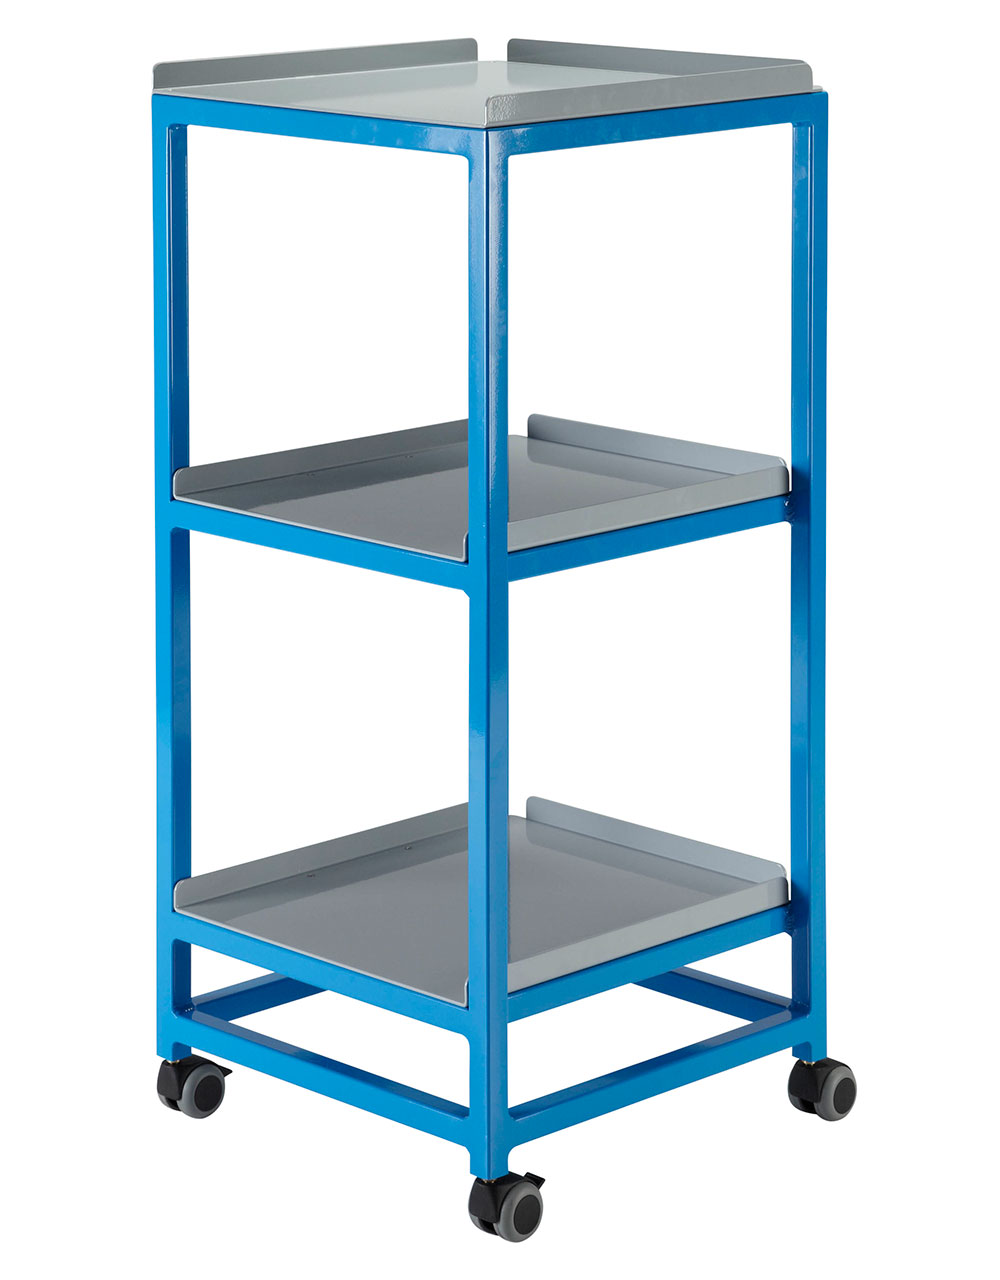 Picture 1 of Utility Trolley (3 Shelves)